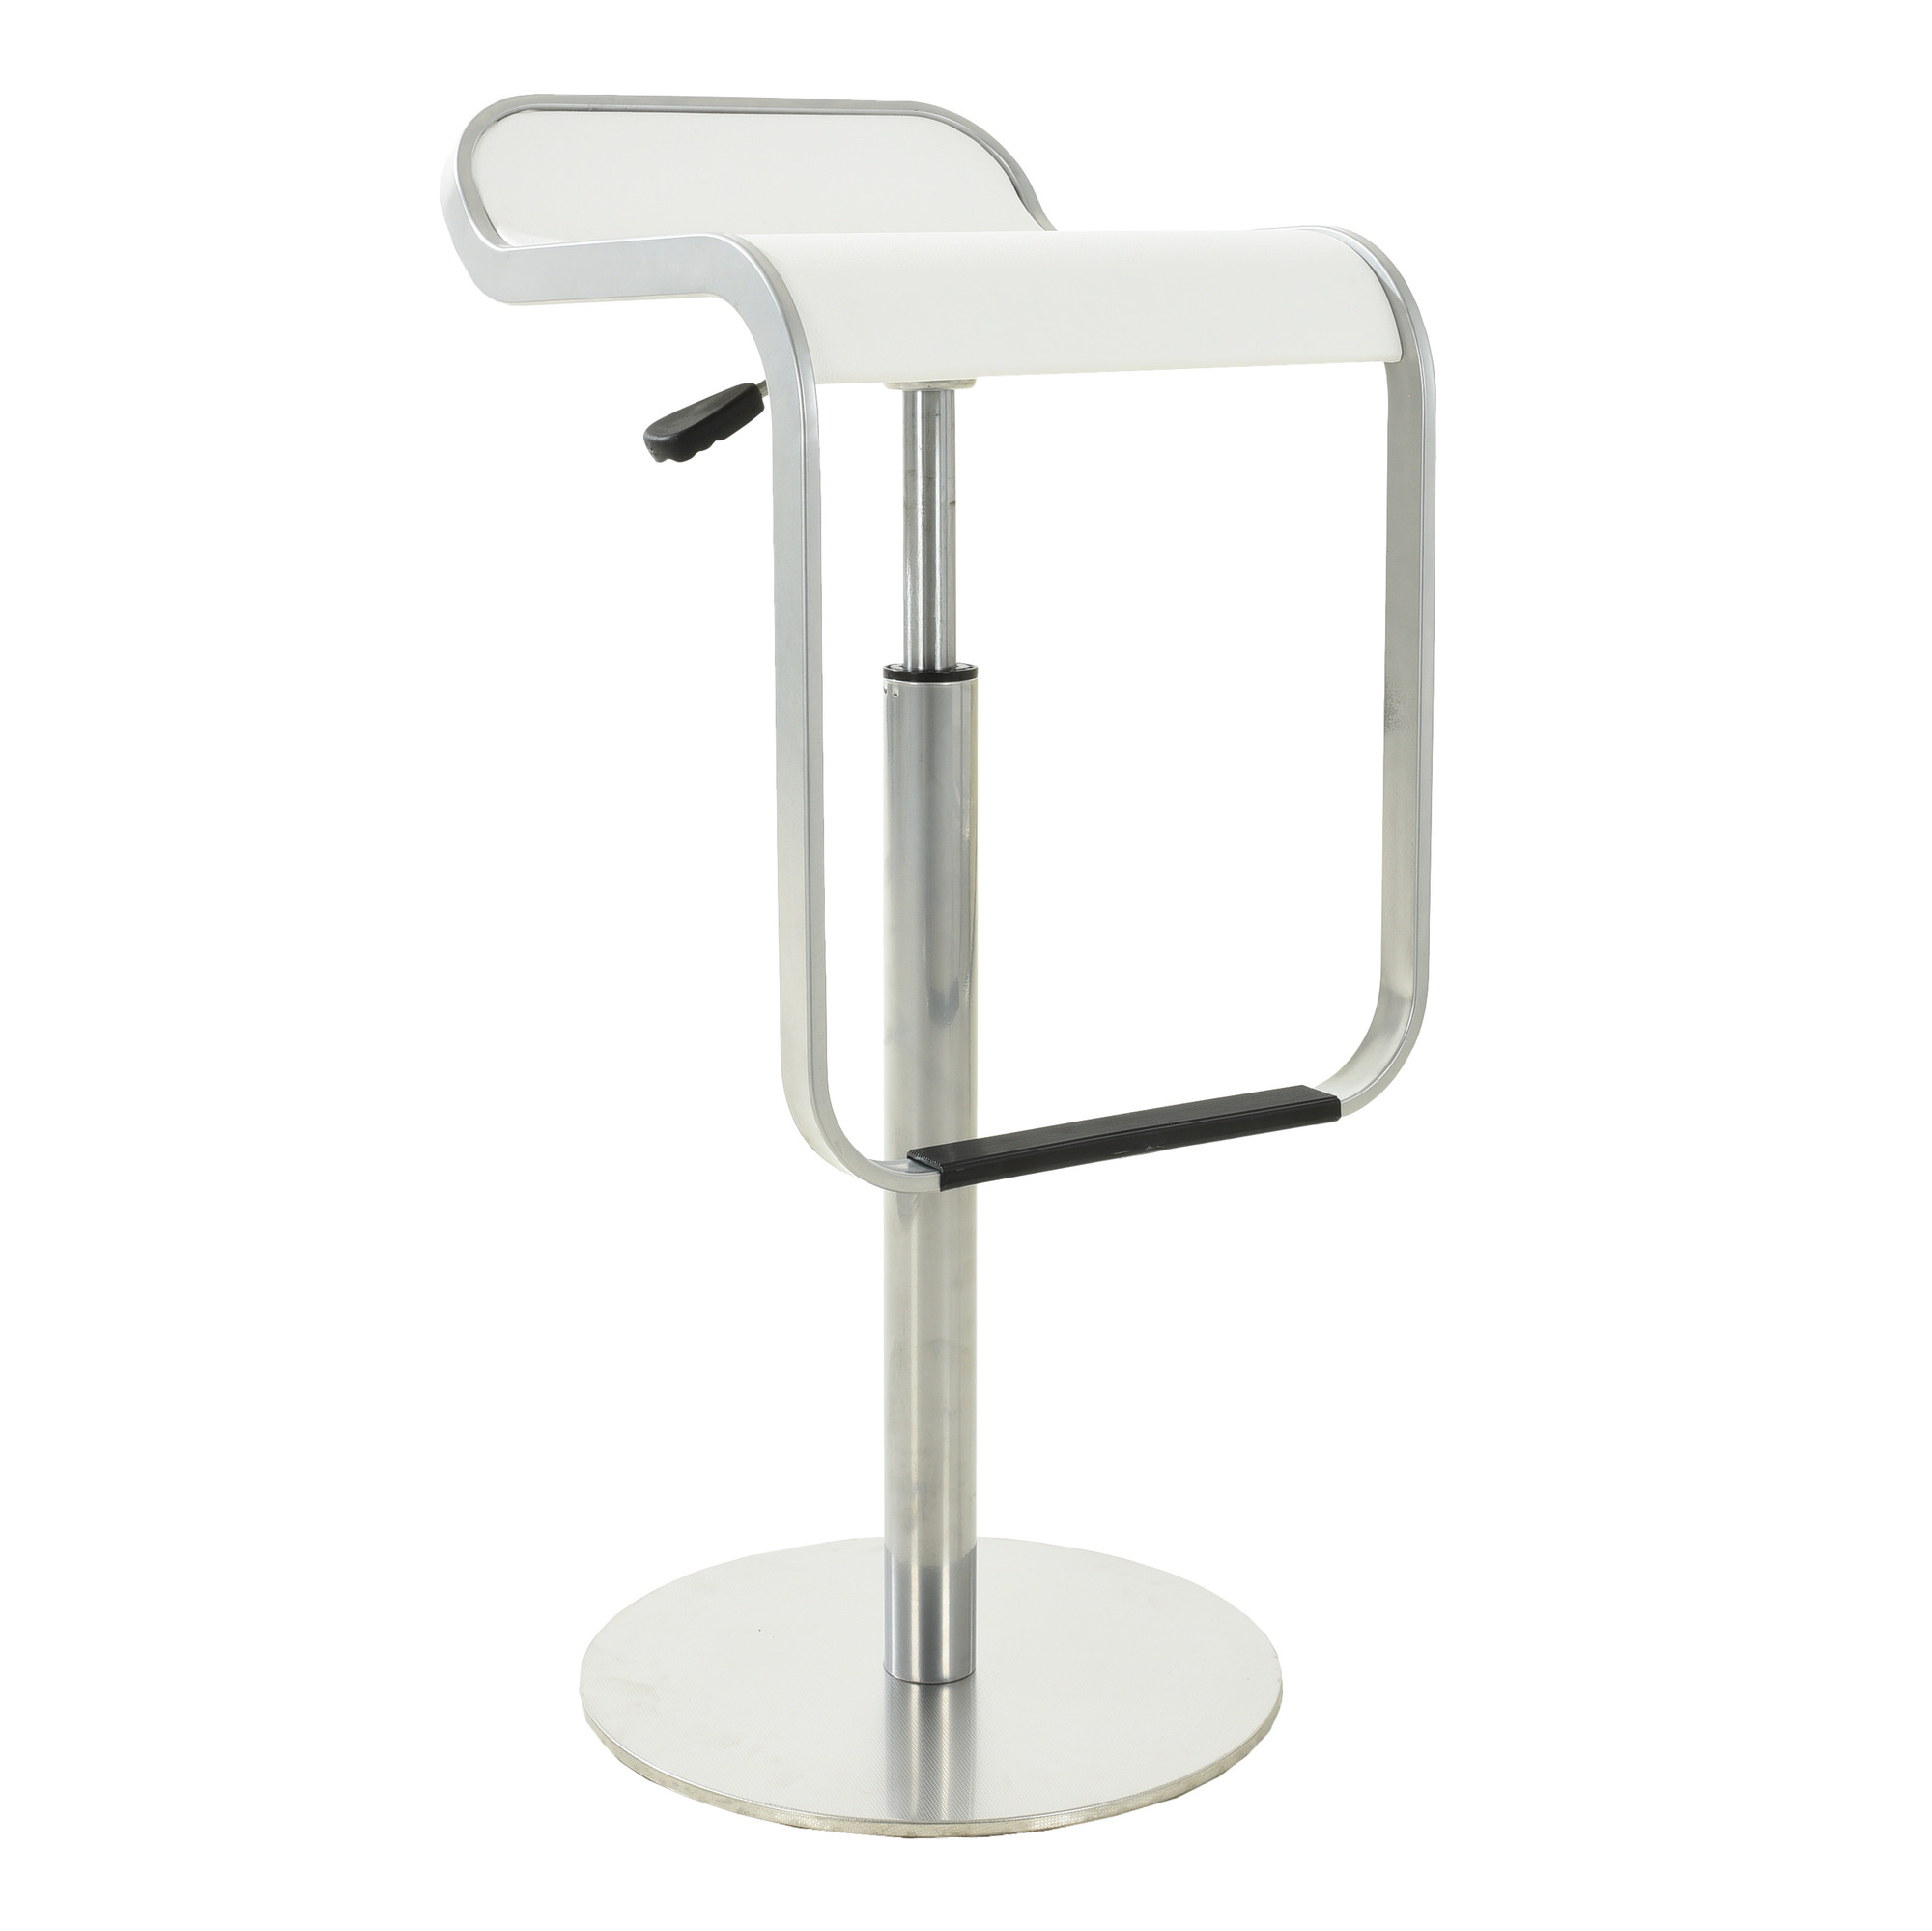 Uncategorized Lem Stools milan direct deluxe lem piston bar stool reviews temple webster sku tpwt1588 is also sometimes listed under the following manufacturer numbers adlembkc adlemwhc